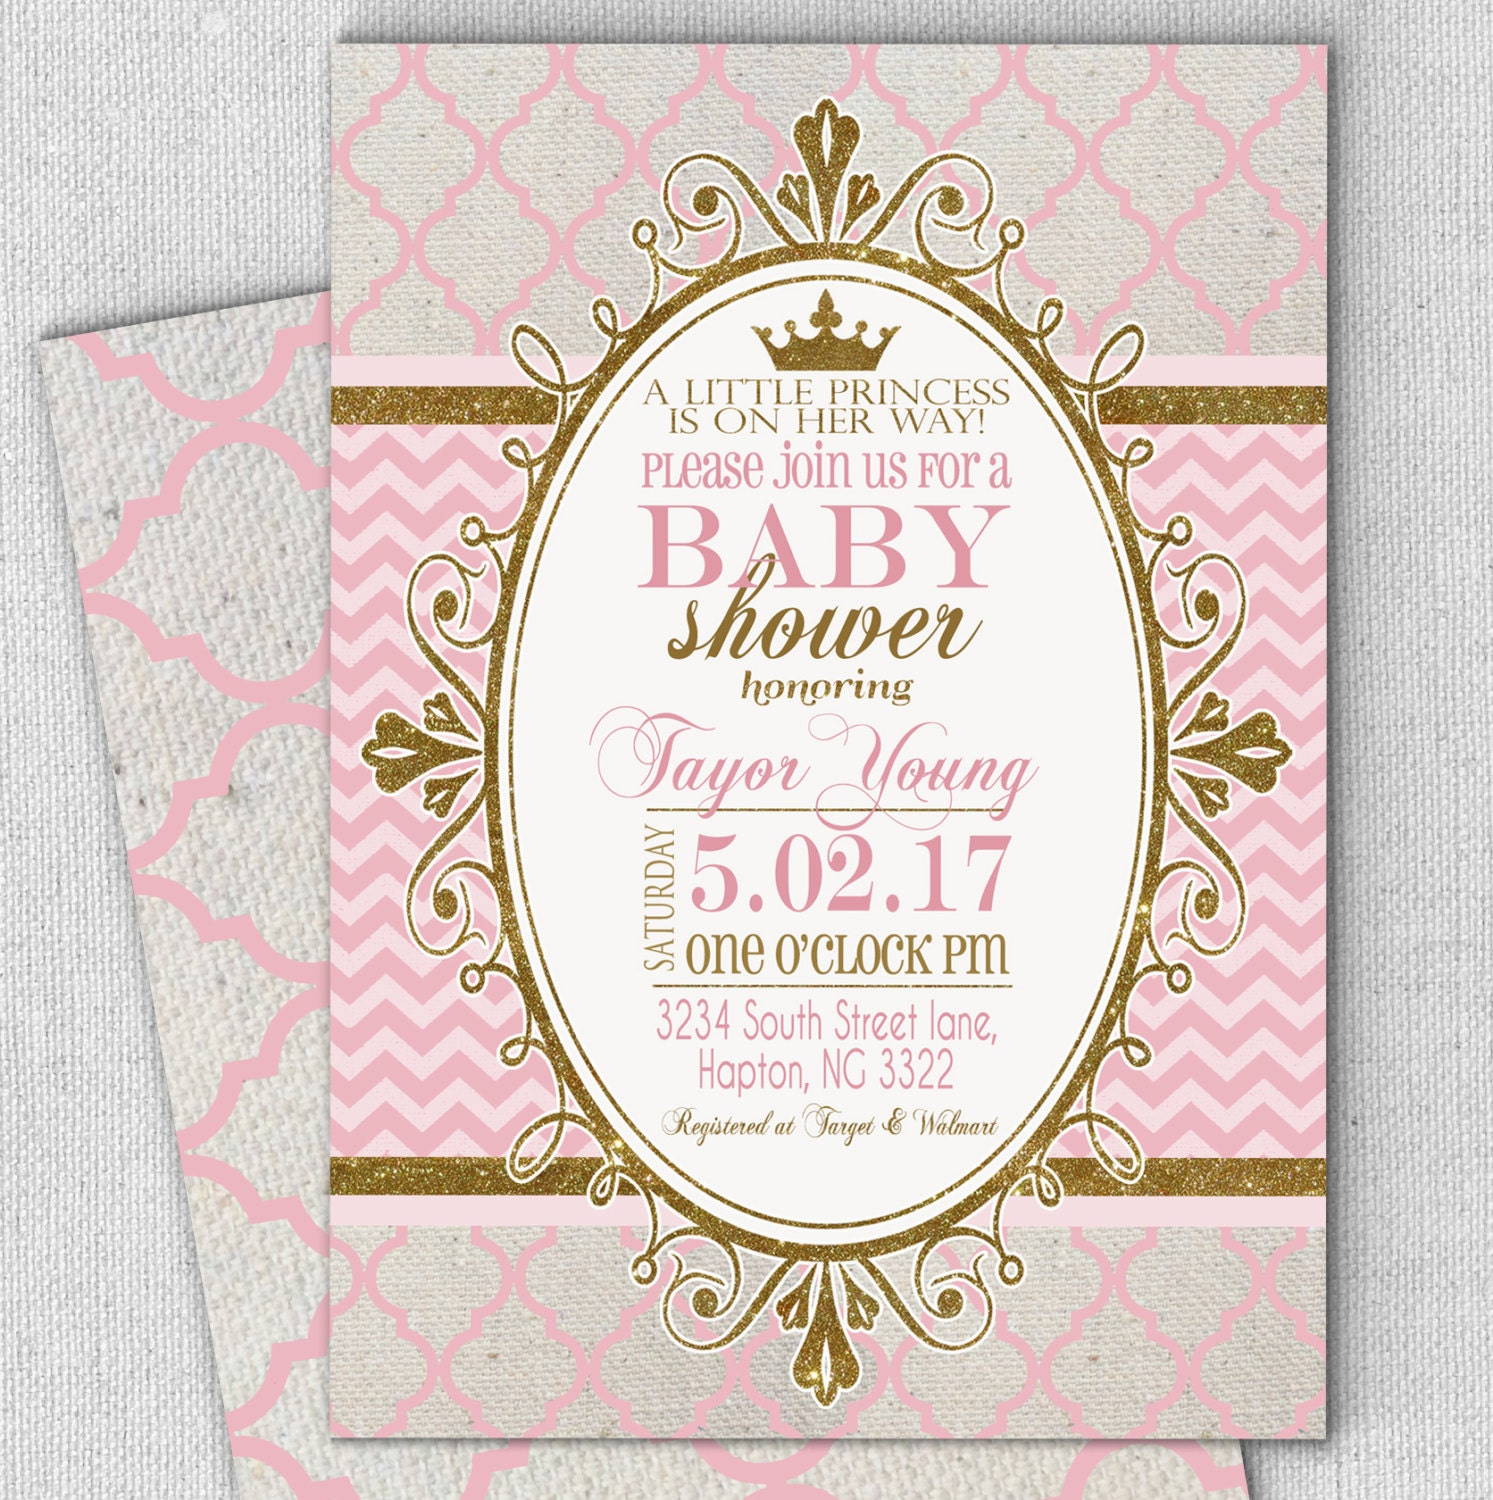 invitation and twinkle pin somethingborrowedatl gender gold invitations on mint shower star etsy reveal glitter light peach pink baby little by party